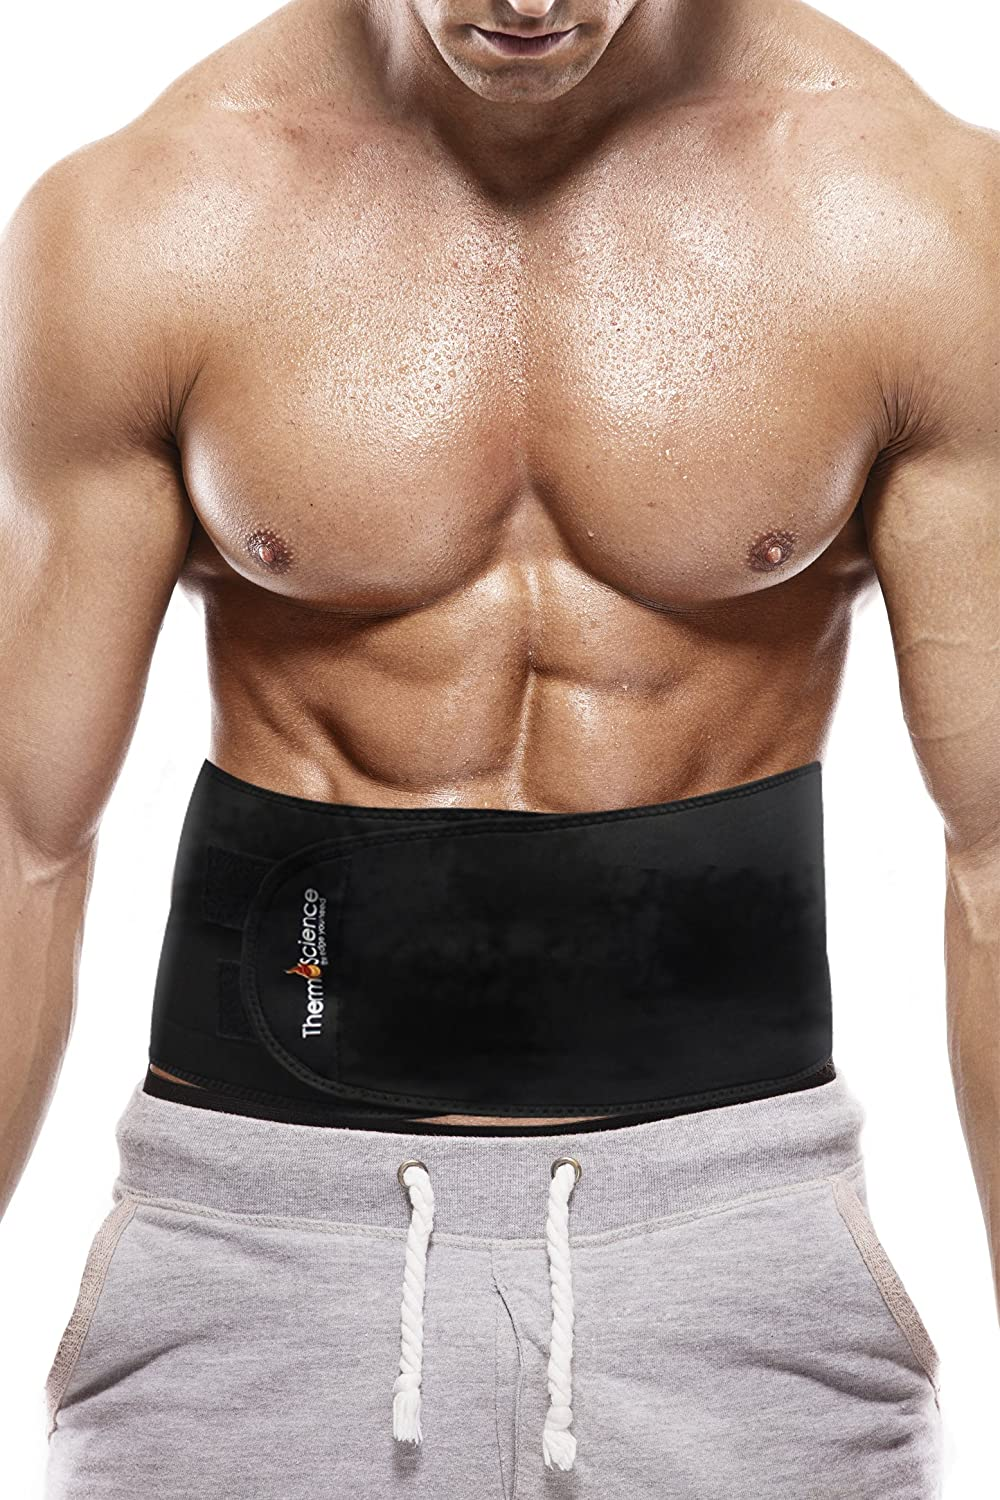 belly band to lose belly fat